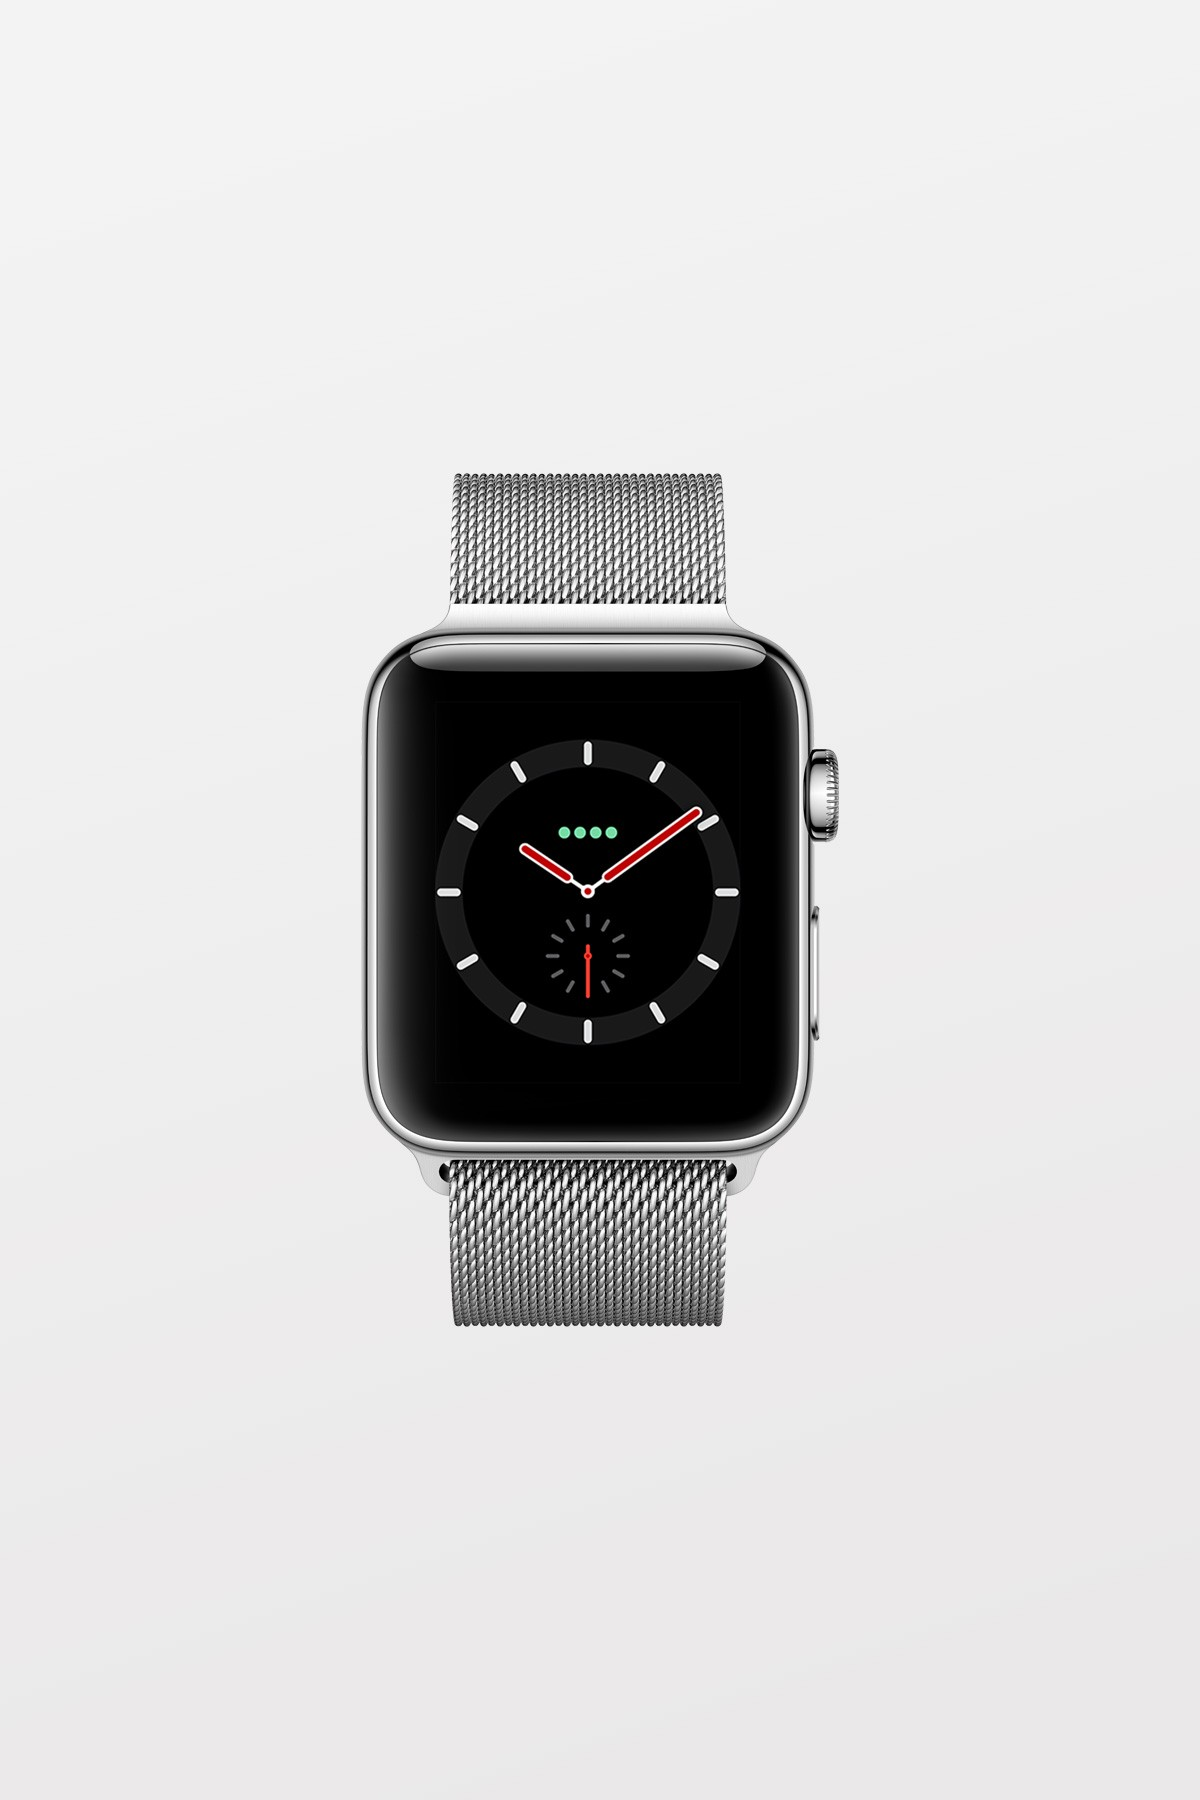 Apple Watch Series 3 GPS + Cellular - 38mm - Stainless Steel Case with Milanese Loop